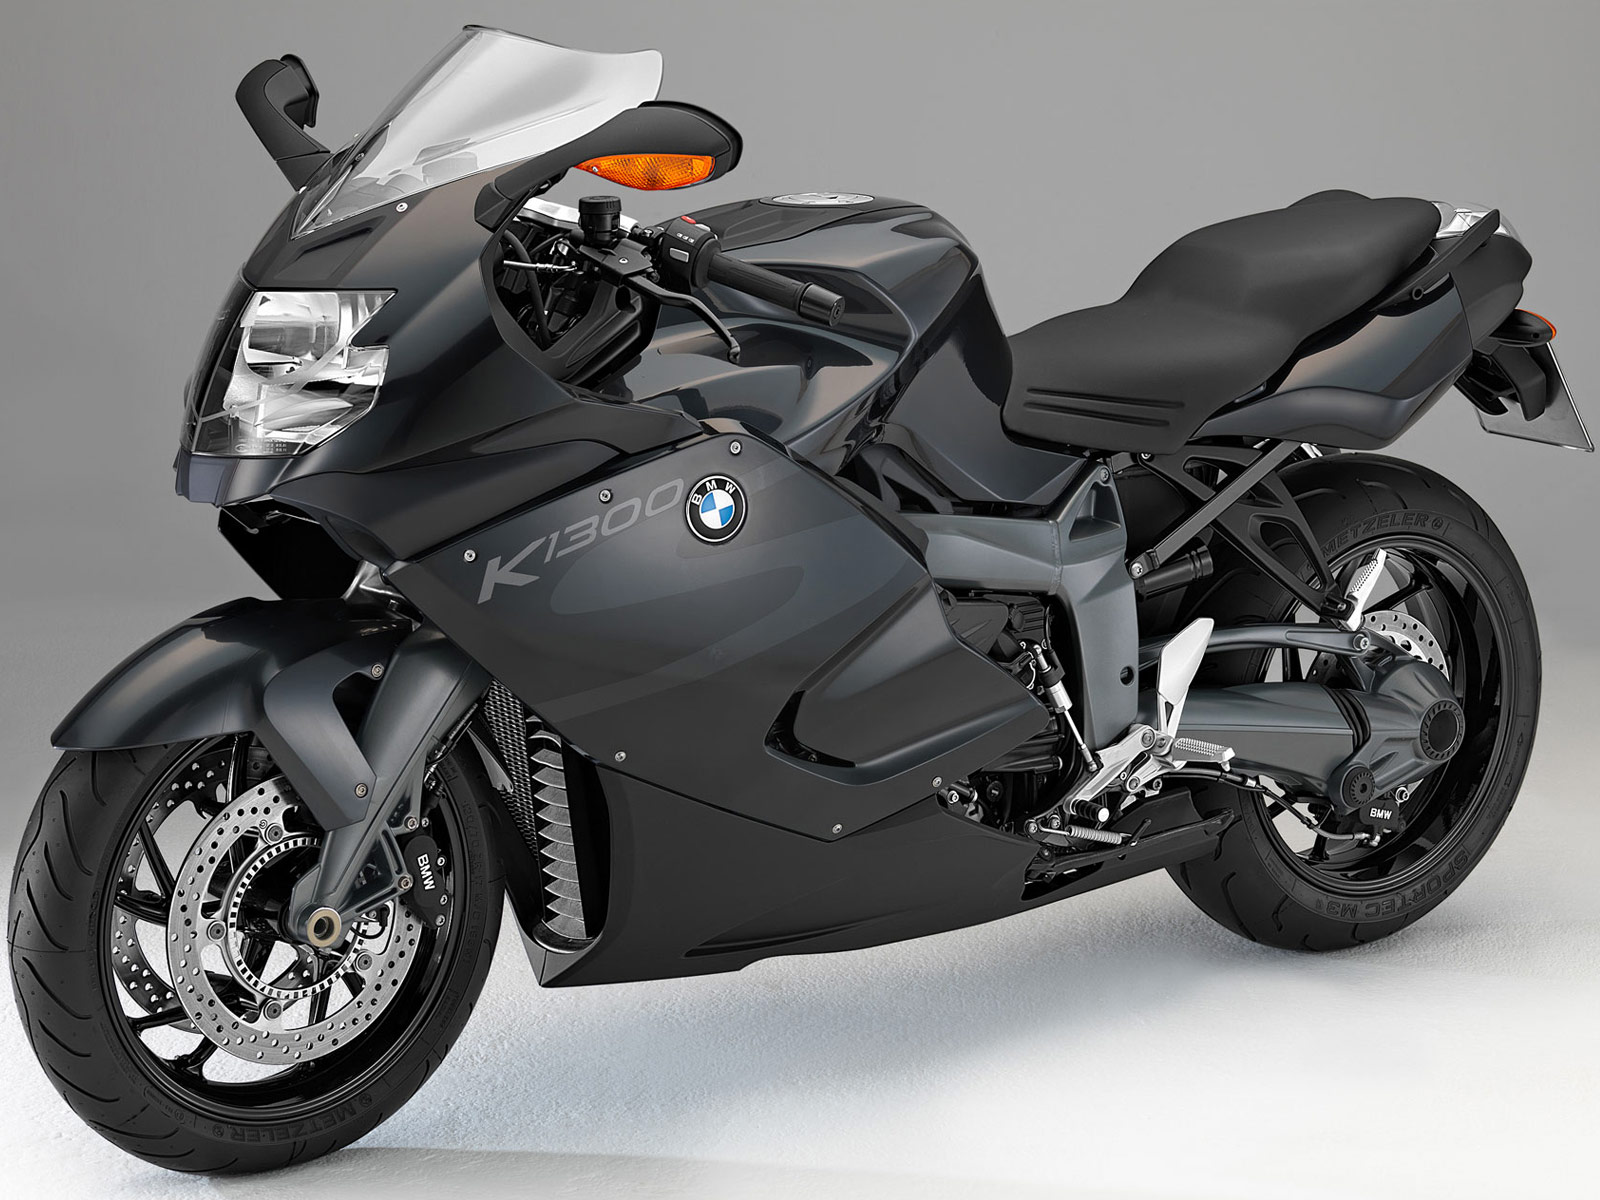 2013 bmw k1300s motorcycle insurance information. Black Bedroom Furniture Sets. Home Design Ideas